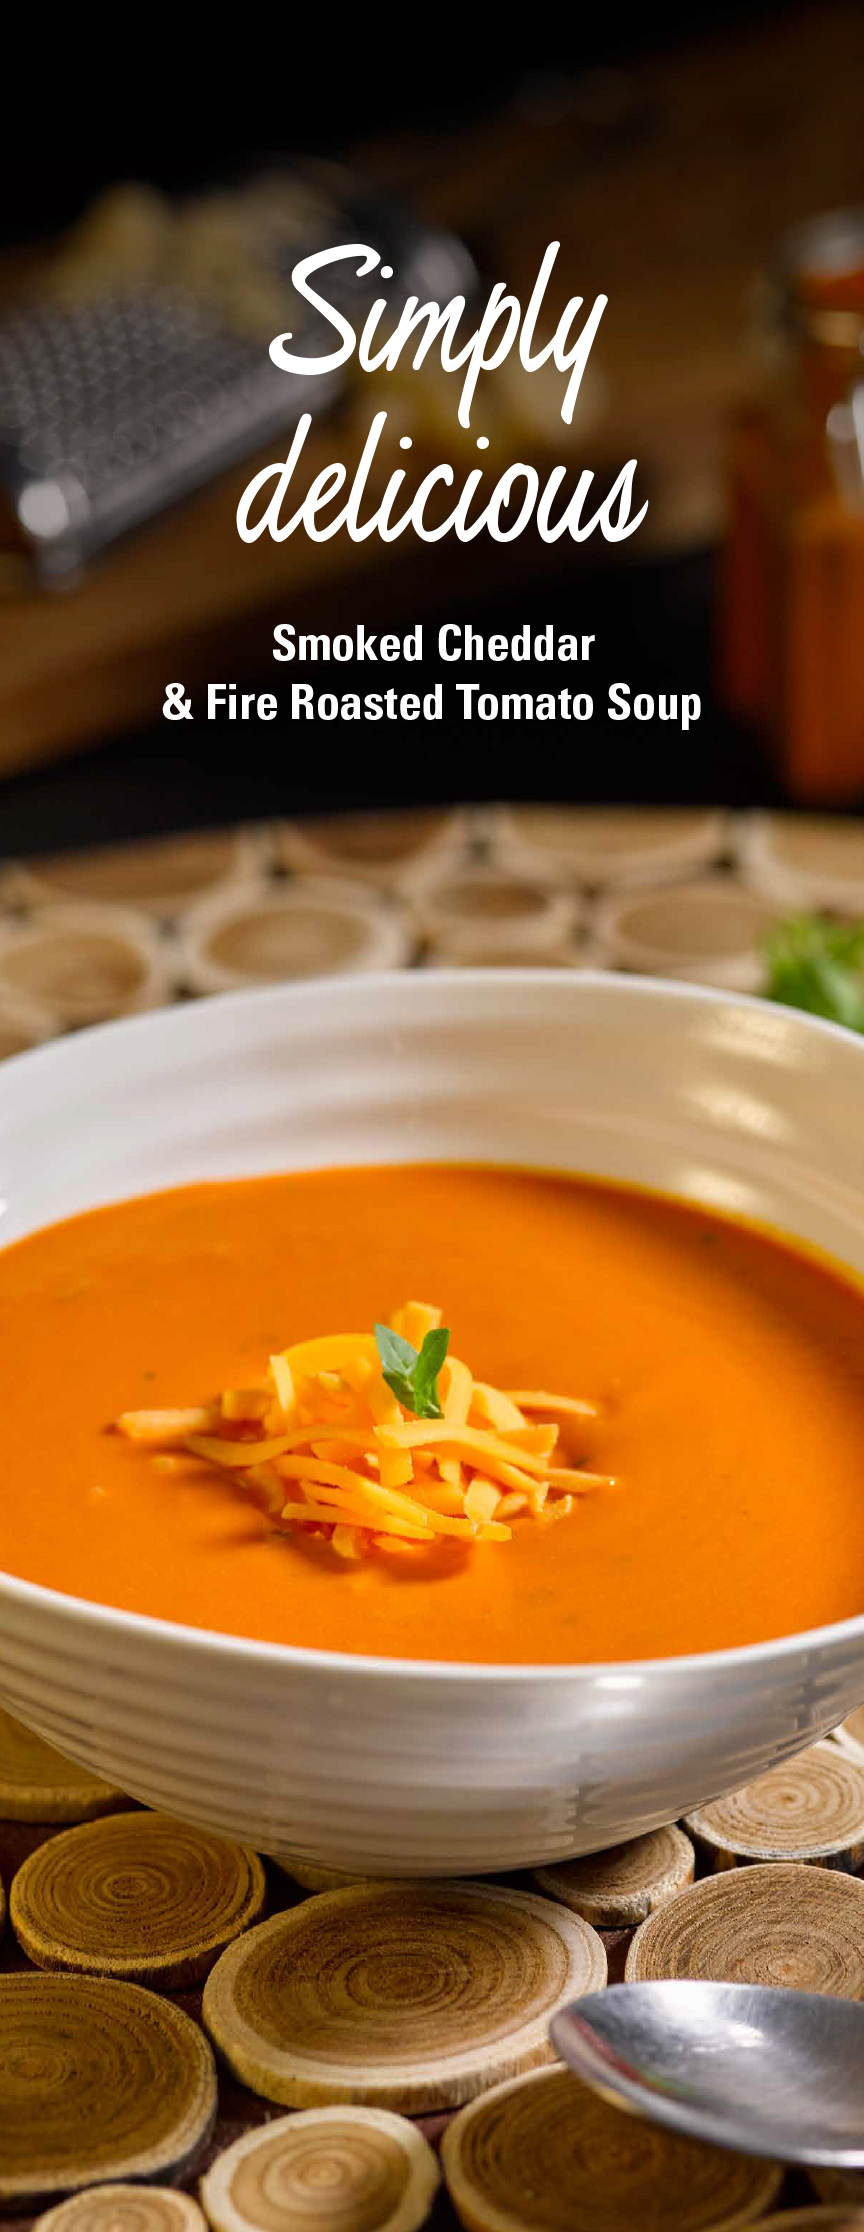 ge_2015_fall_slim_board_tomato_soup_v1.jpg